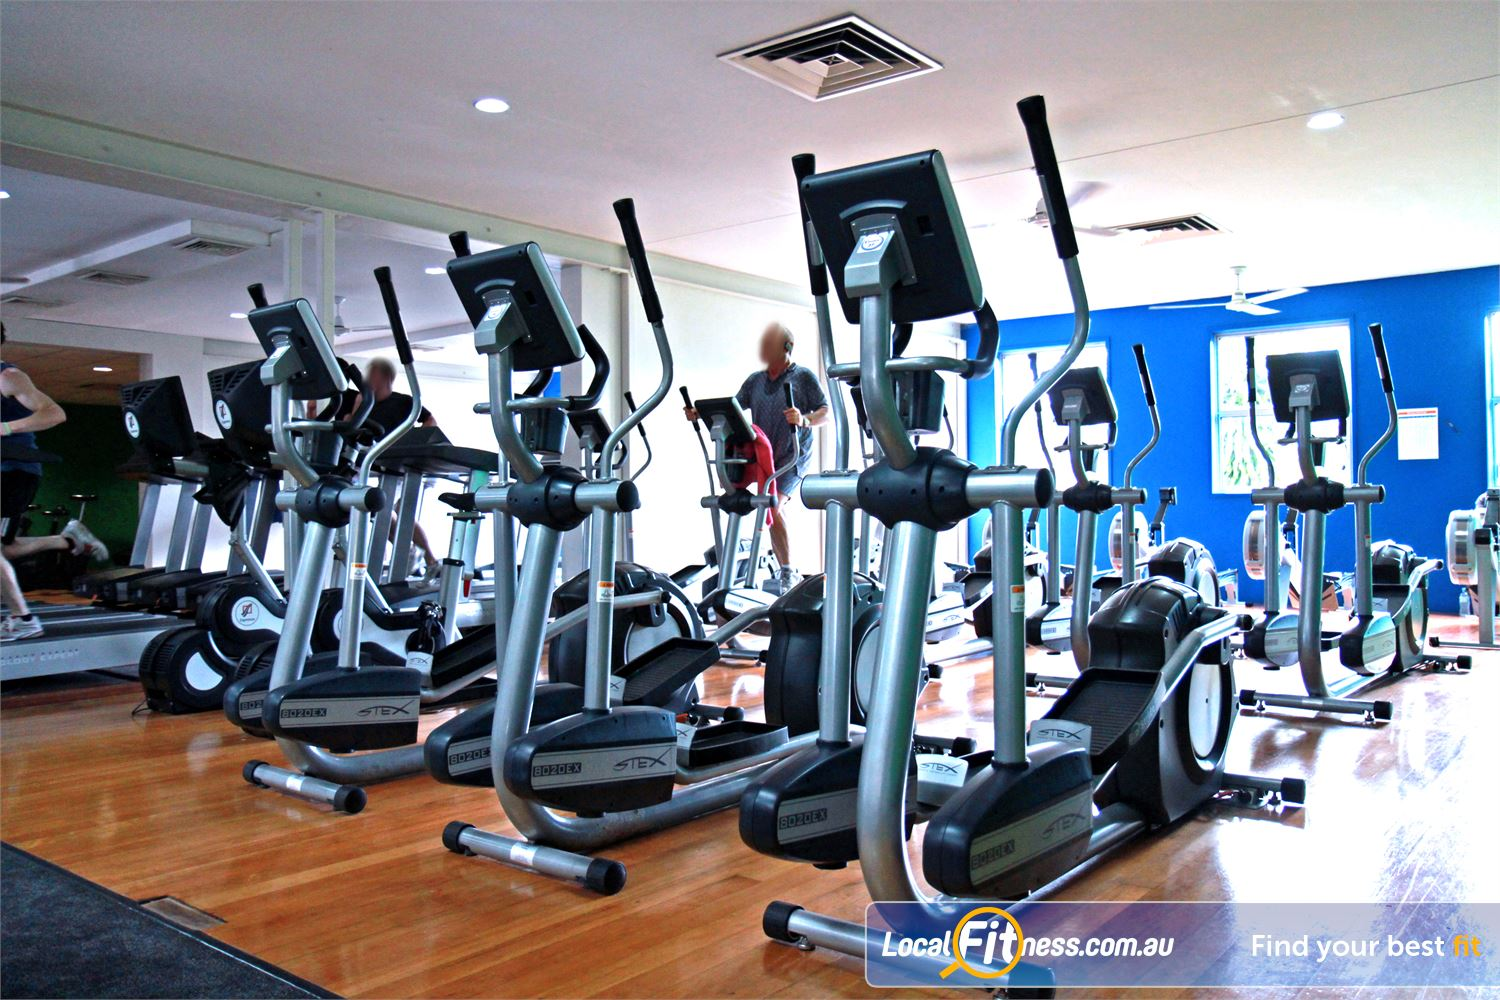 Goodlife Health Clubs Morningside Goodlife Morningside gym provides multiple machines so you don't have to wait.